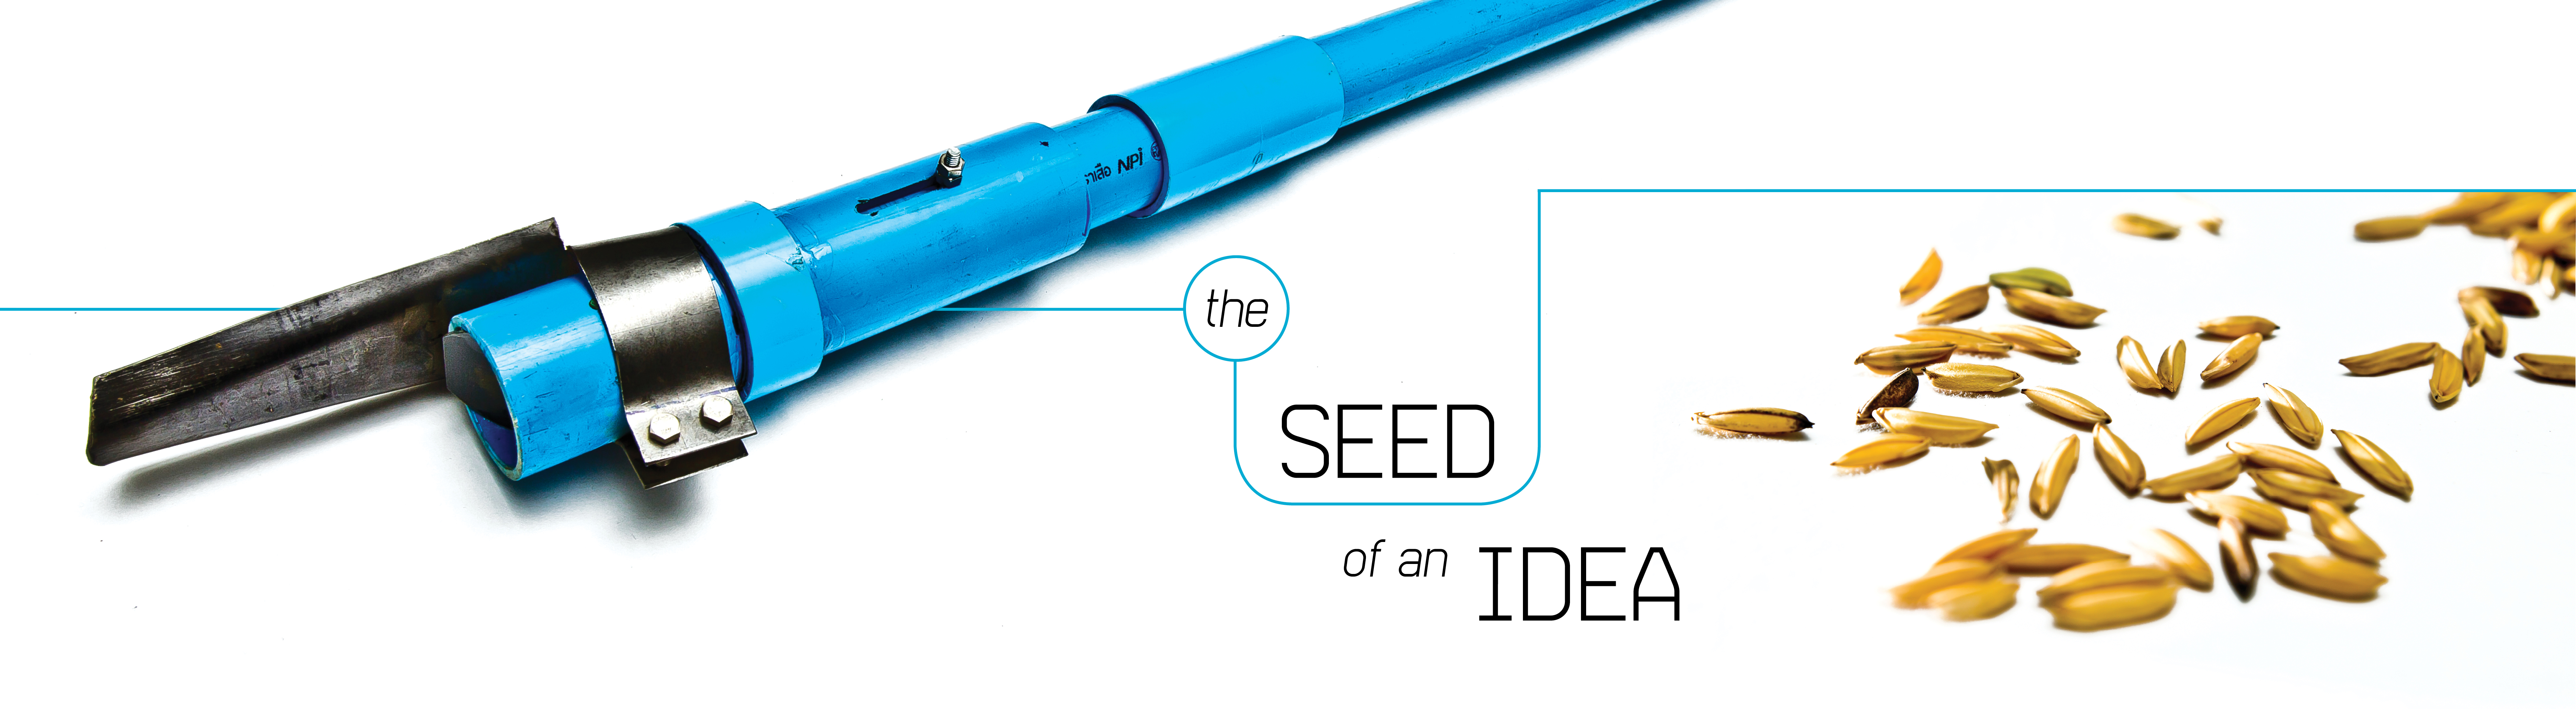 The Seed of an Idea